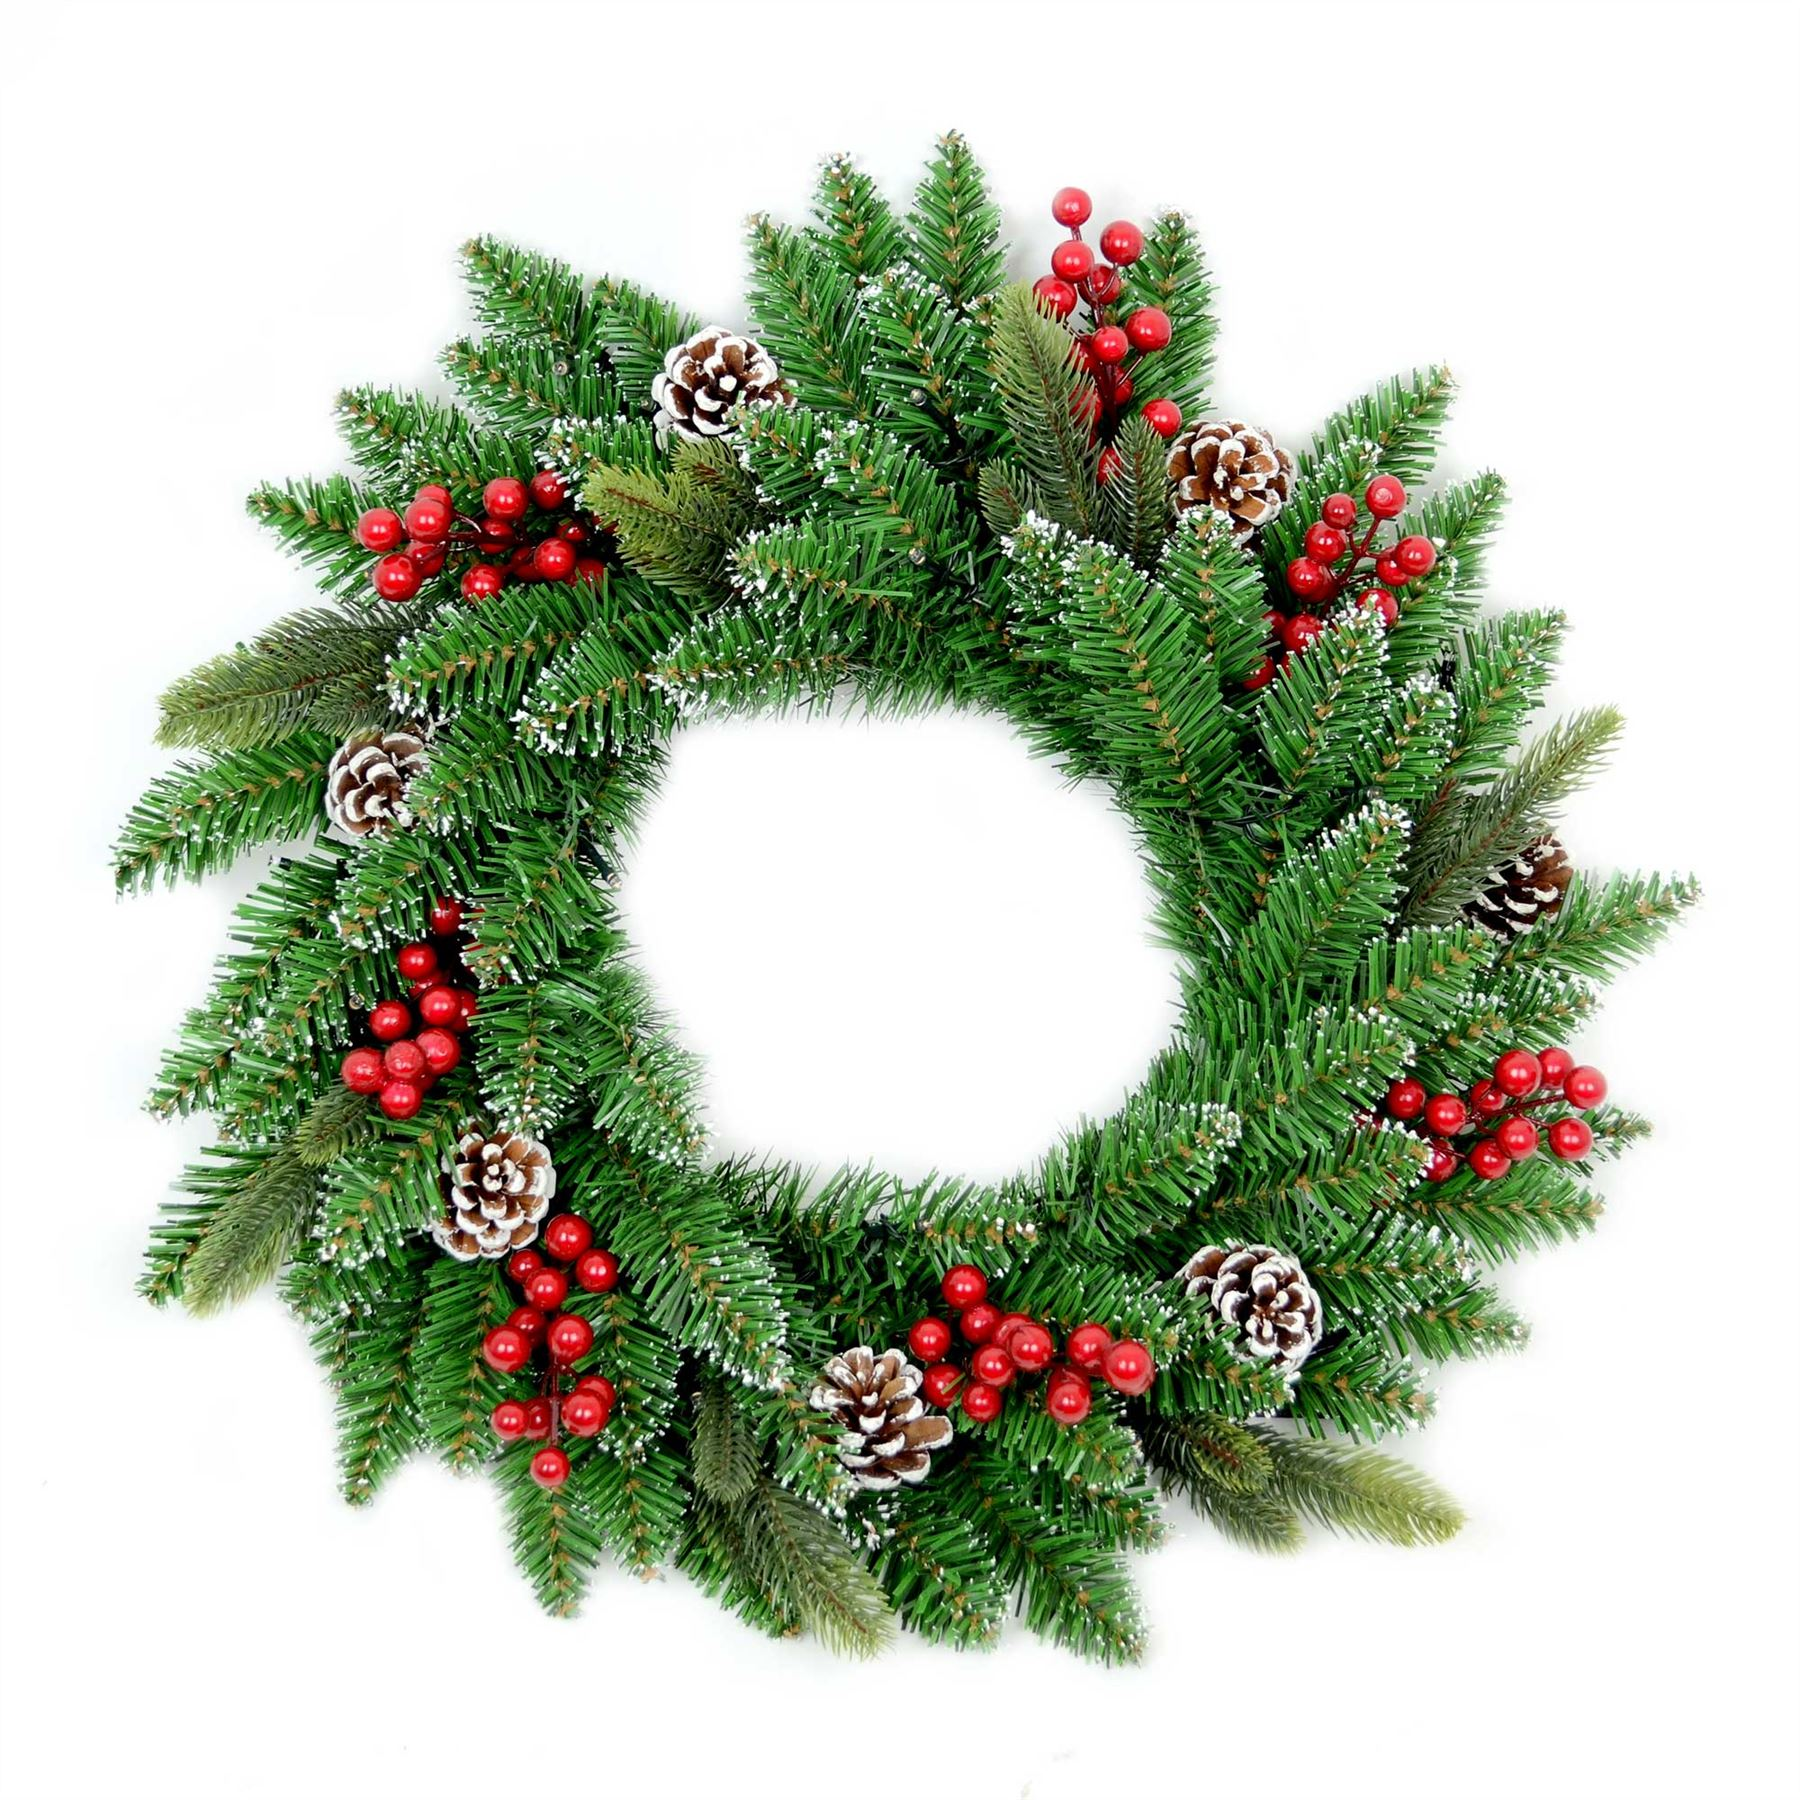 Christmas Tree Pre Lit Decorated Garland Wreath Xmas Home ...